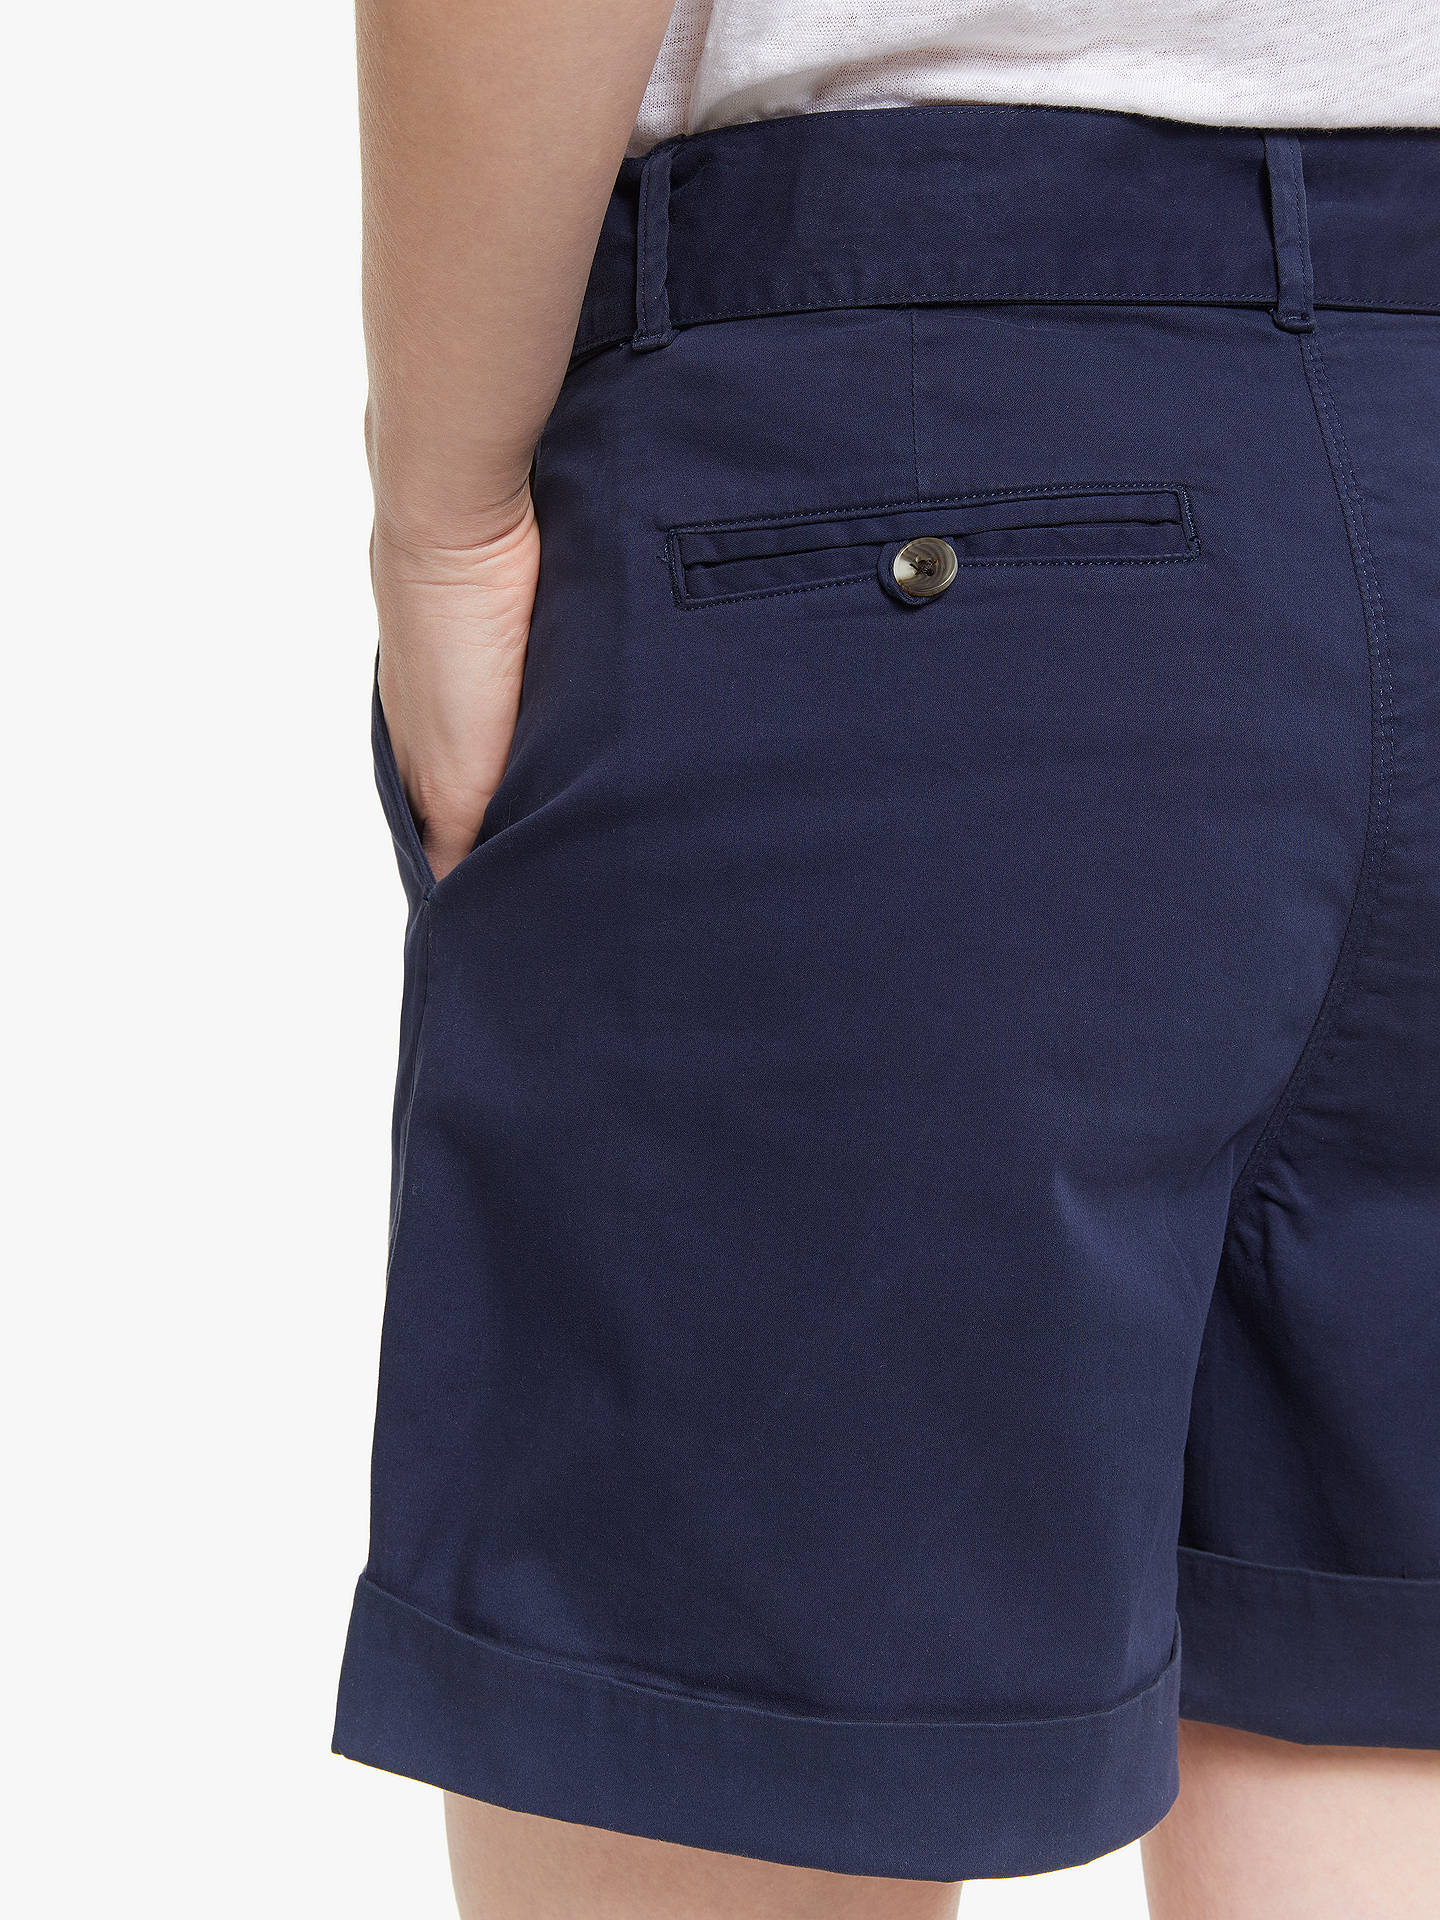 Buy John Lewis & Partners Chino Tie Waist Shorts, Navy, 8 Online at johnlewis.com